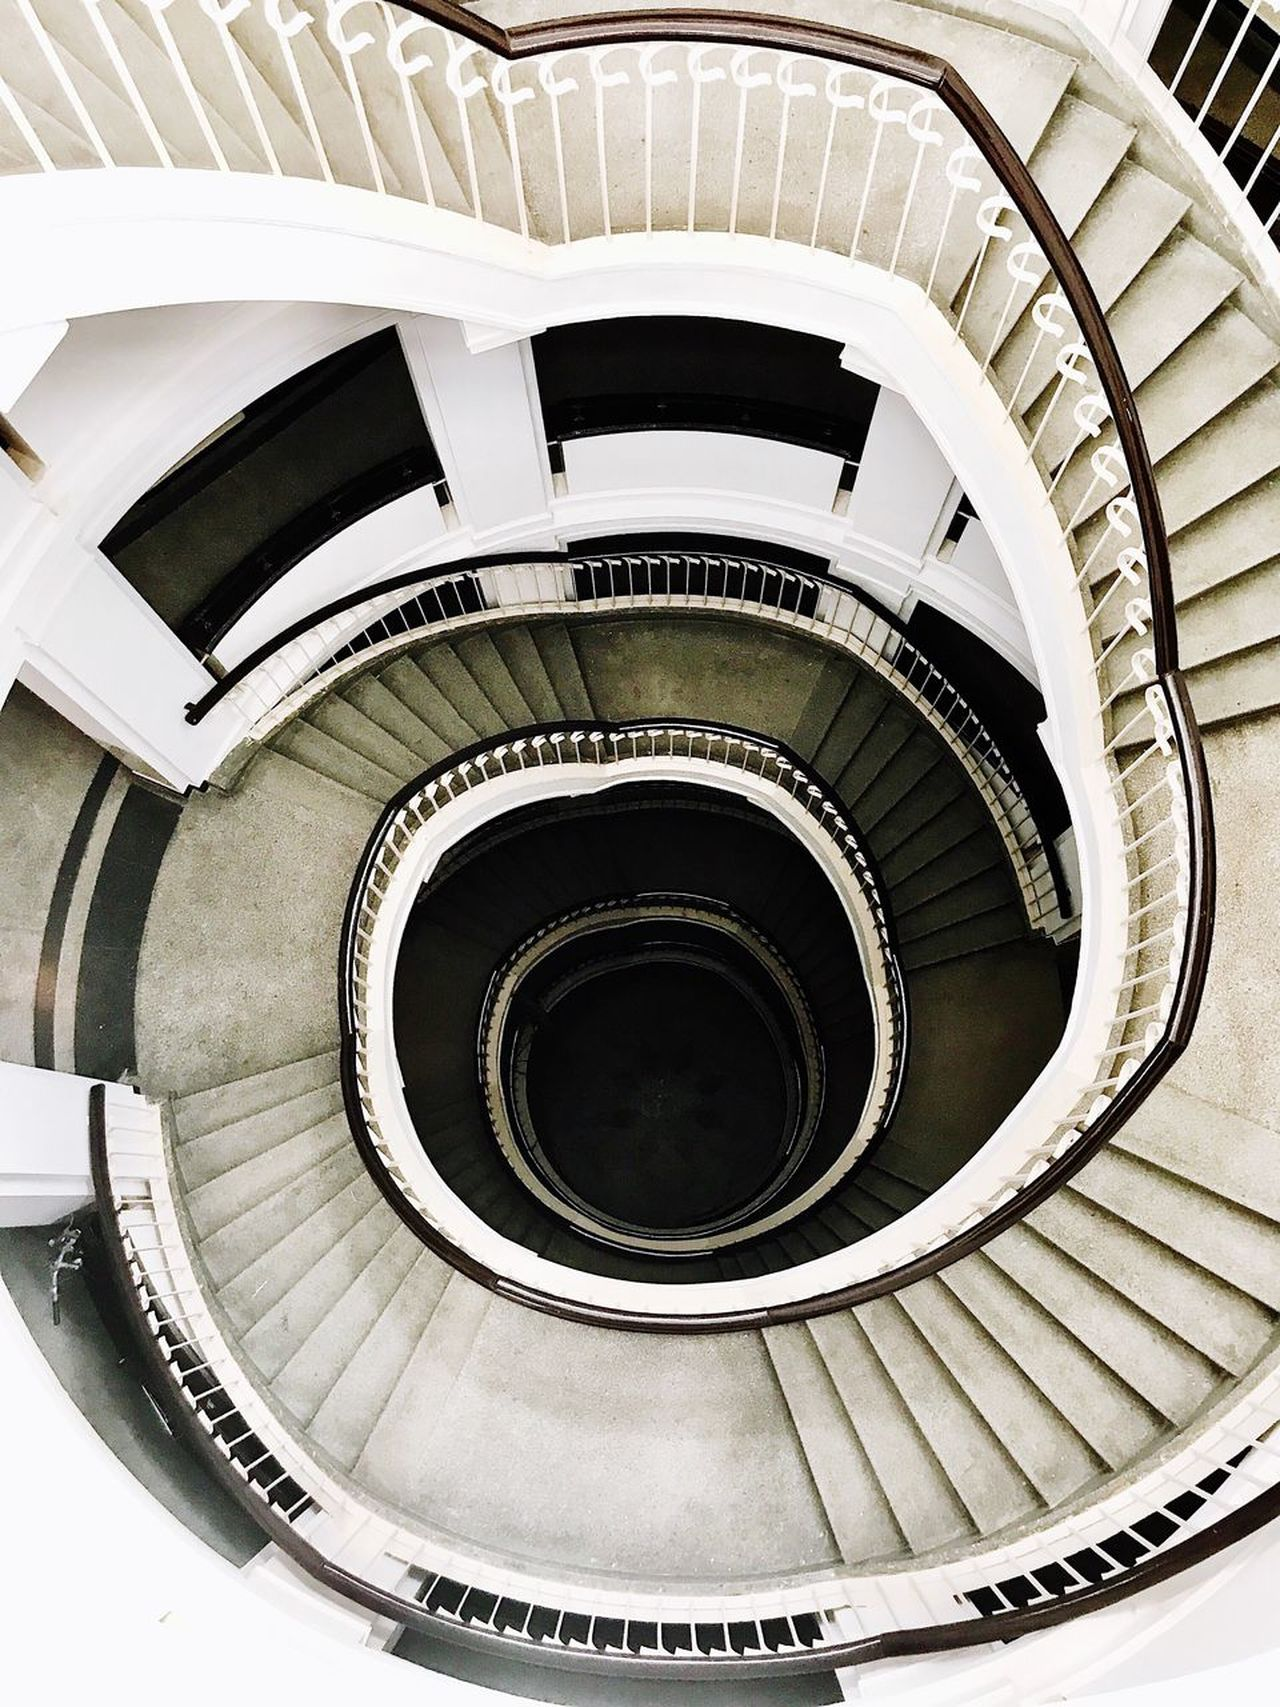 Spiral Steps And Staircases Staircase Railing Steps Spiral Stairs Architecture Built Structure Stairs High Angle View No People Indoors  Hand Rail Spiral Staircase Day Shotoniphone7plus EyeEm Selects